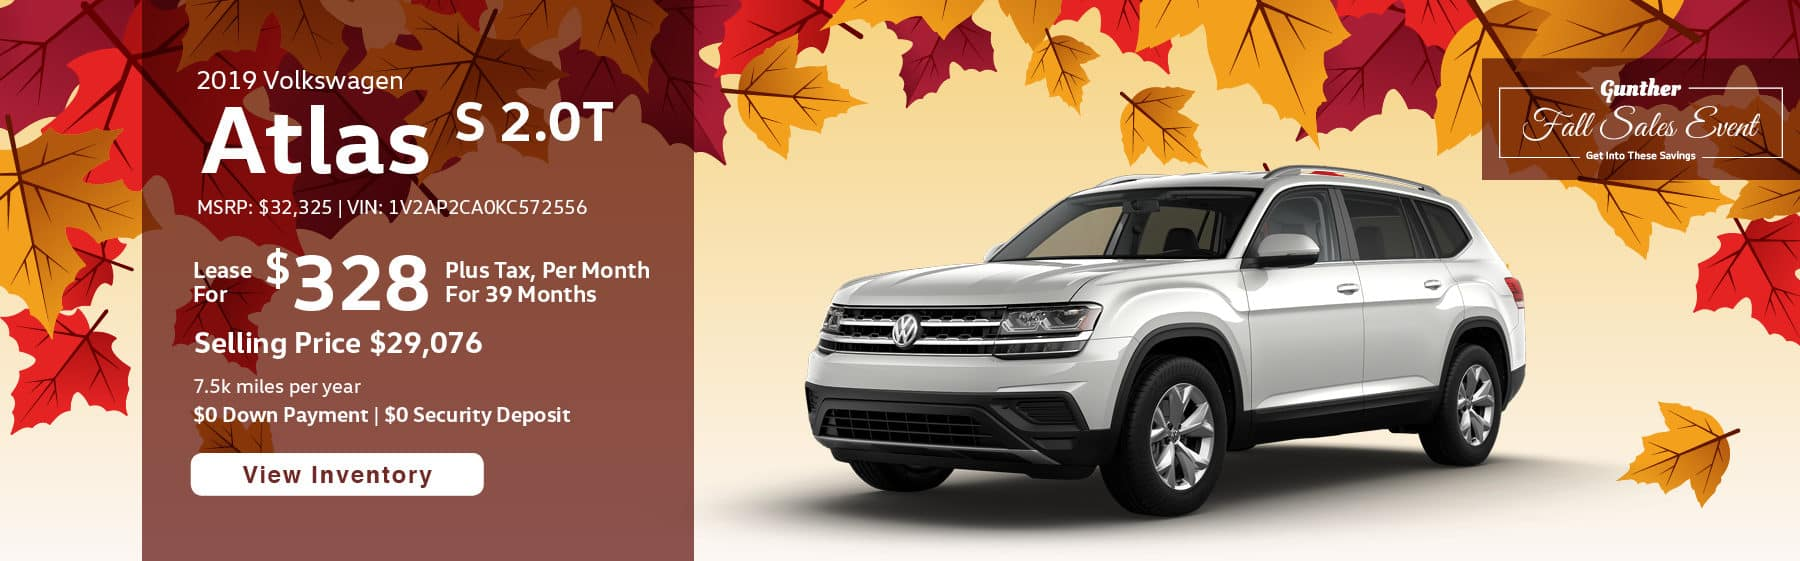 Lease the 2019 Atlas S 2.0T for $328 per month, plus tax for 39 months.